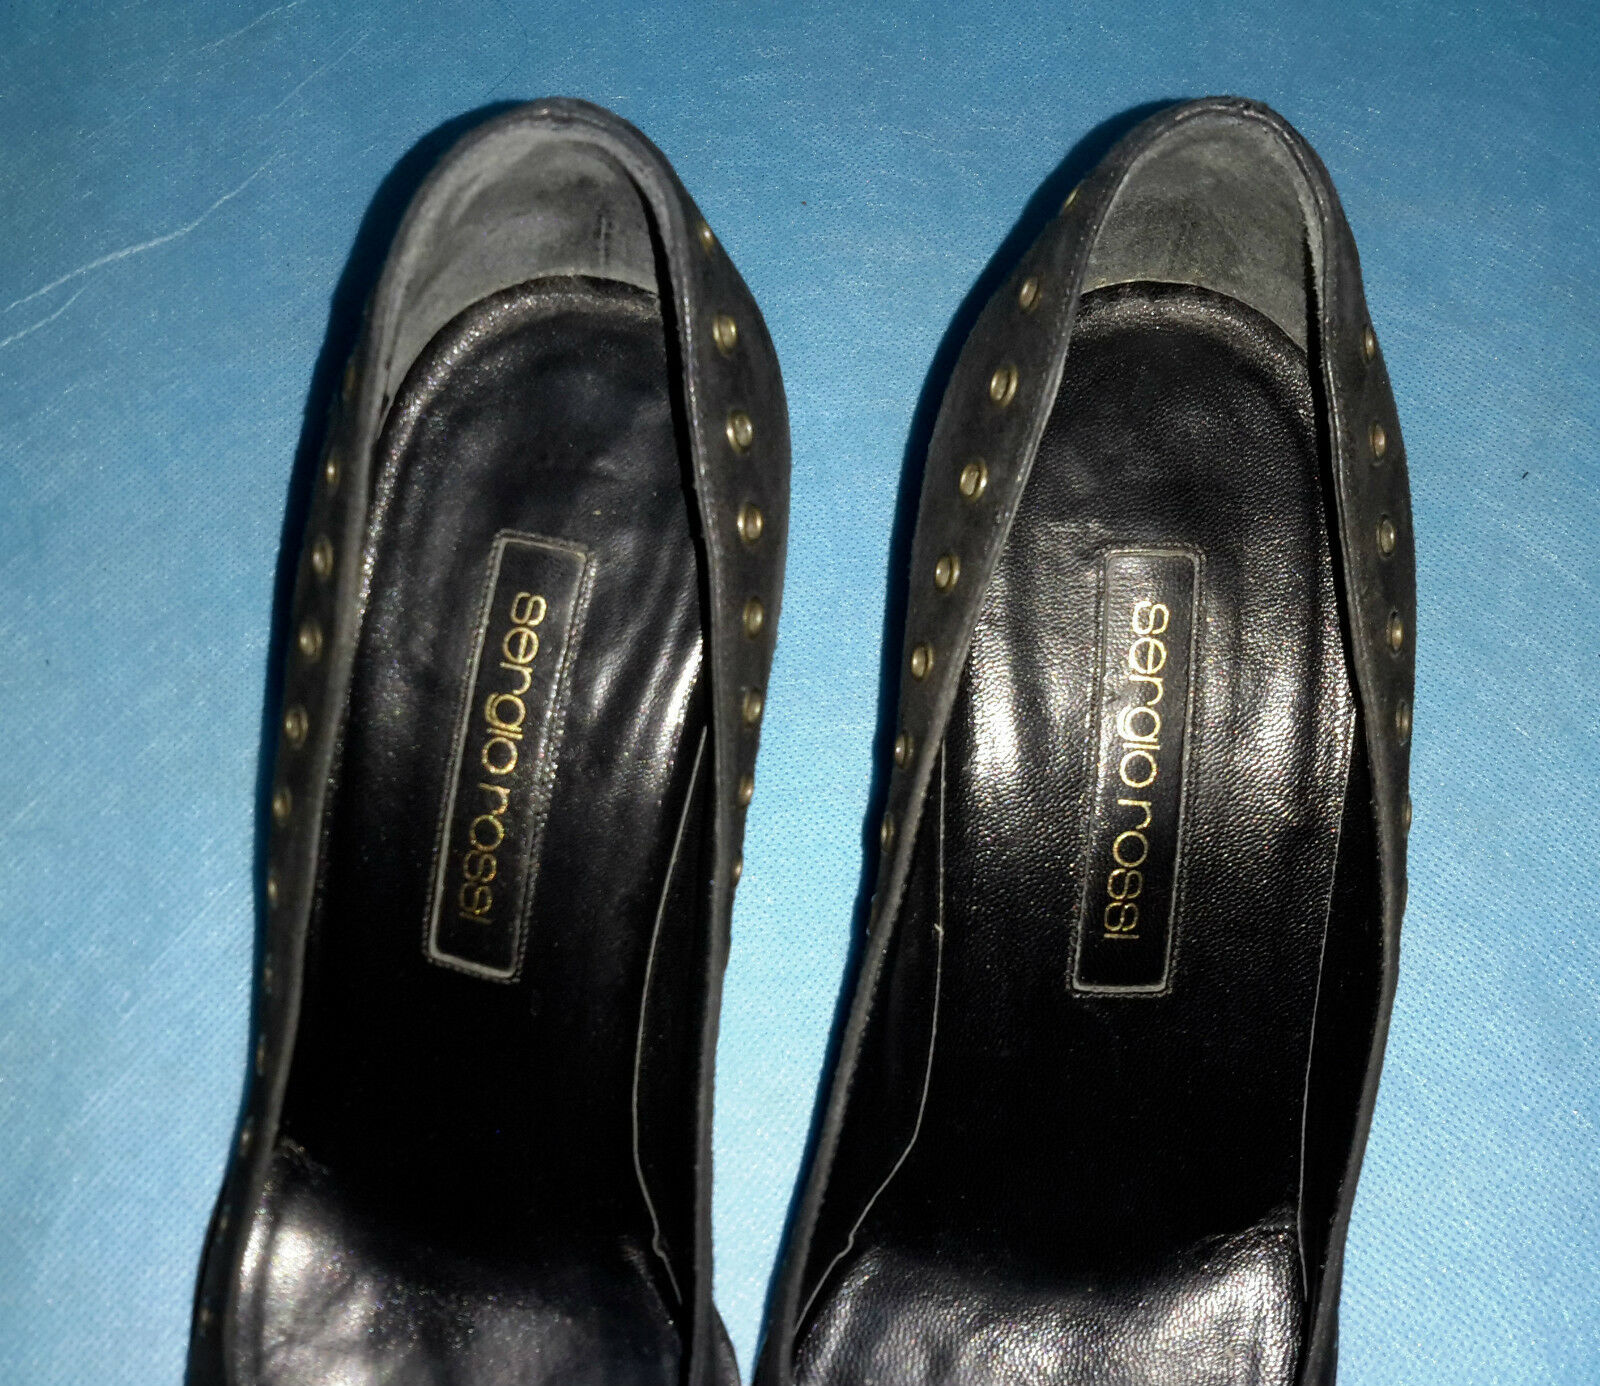 Court shoes SERGIO ROSSI 100% 100% 100% black leather size 38 FR very good condition cd1ccc